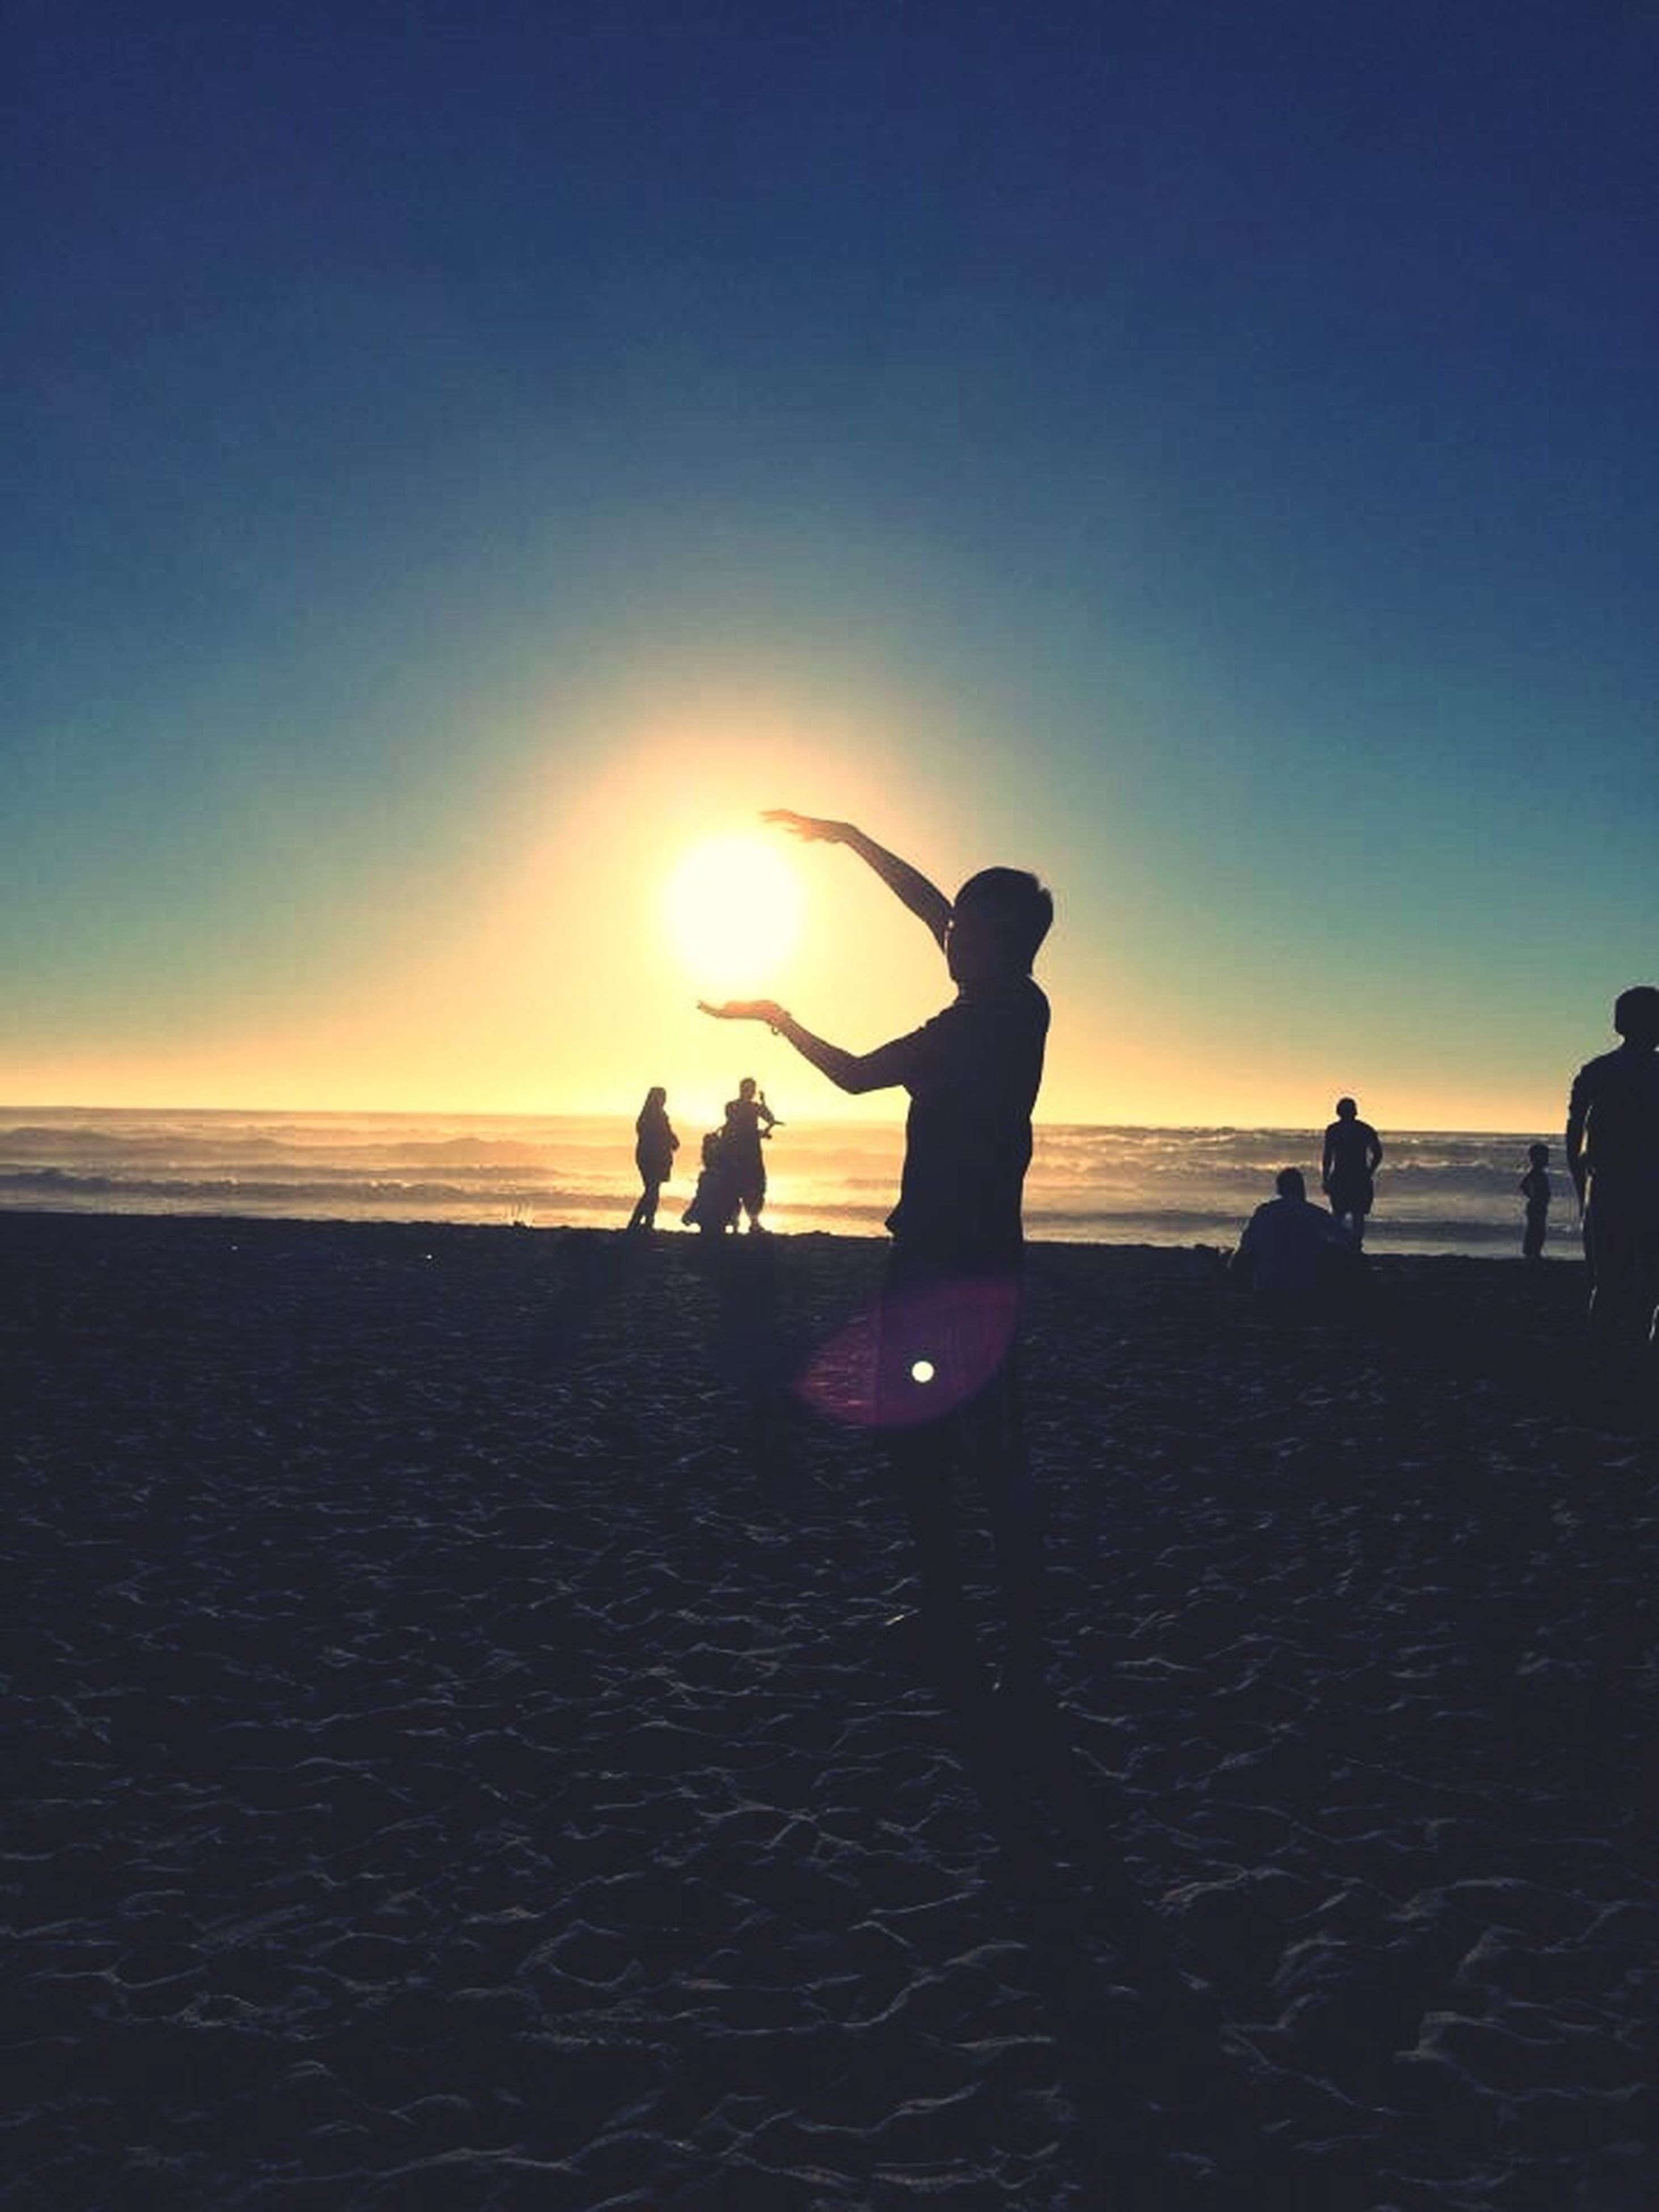 sunset, sea, horizon over water, beach, water, sun, silhouette, leisure activity, lifestyles, togetherness, orange color, men, shore, vacations, person, sky, scenics, beauty in nature, sunlight